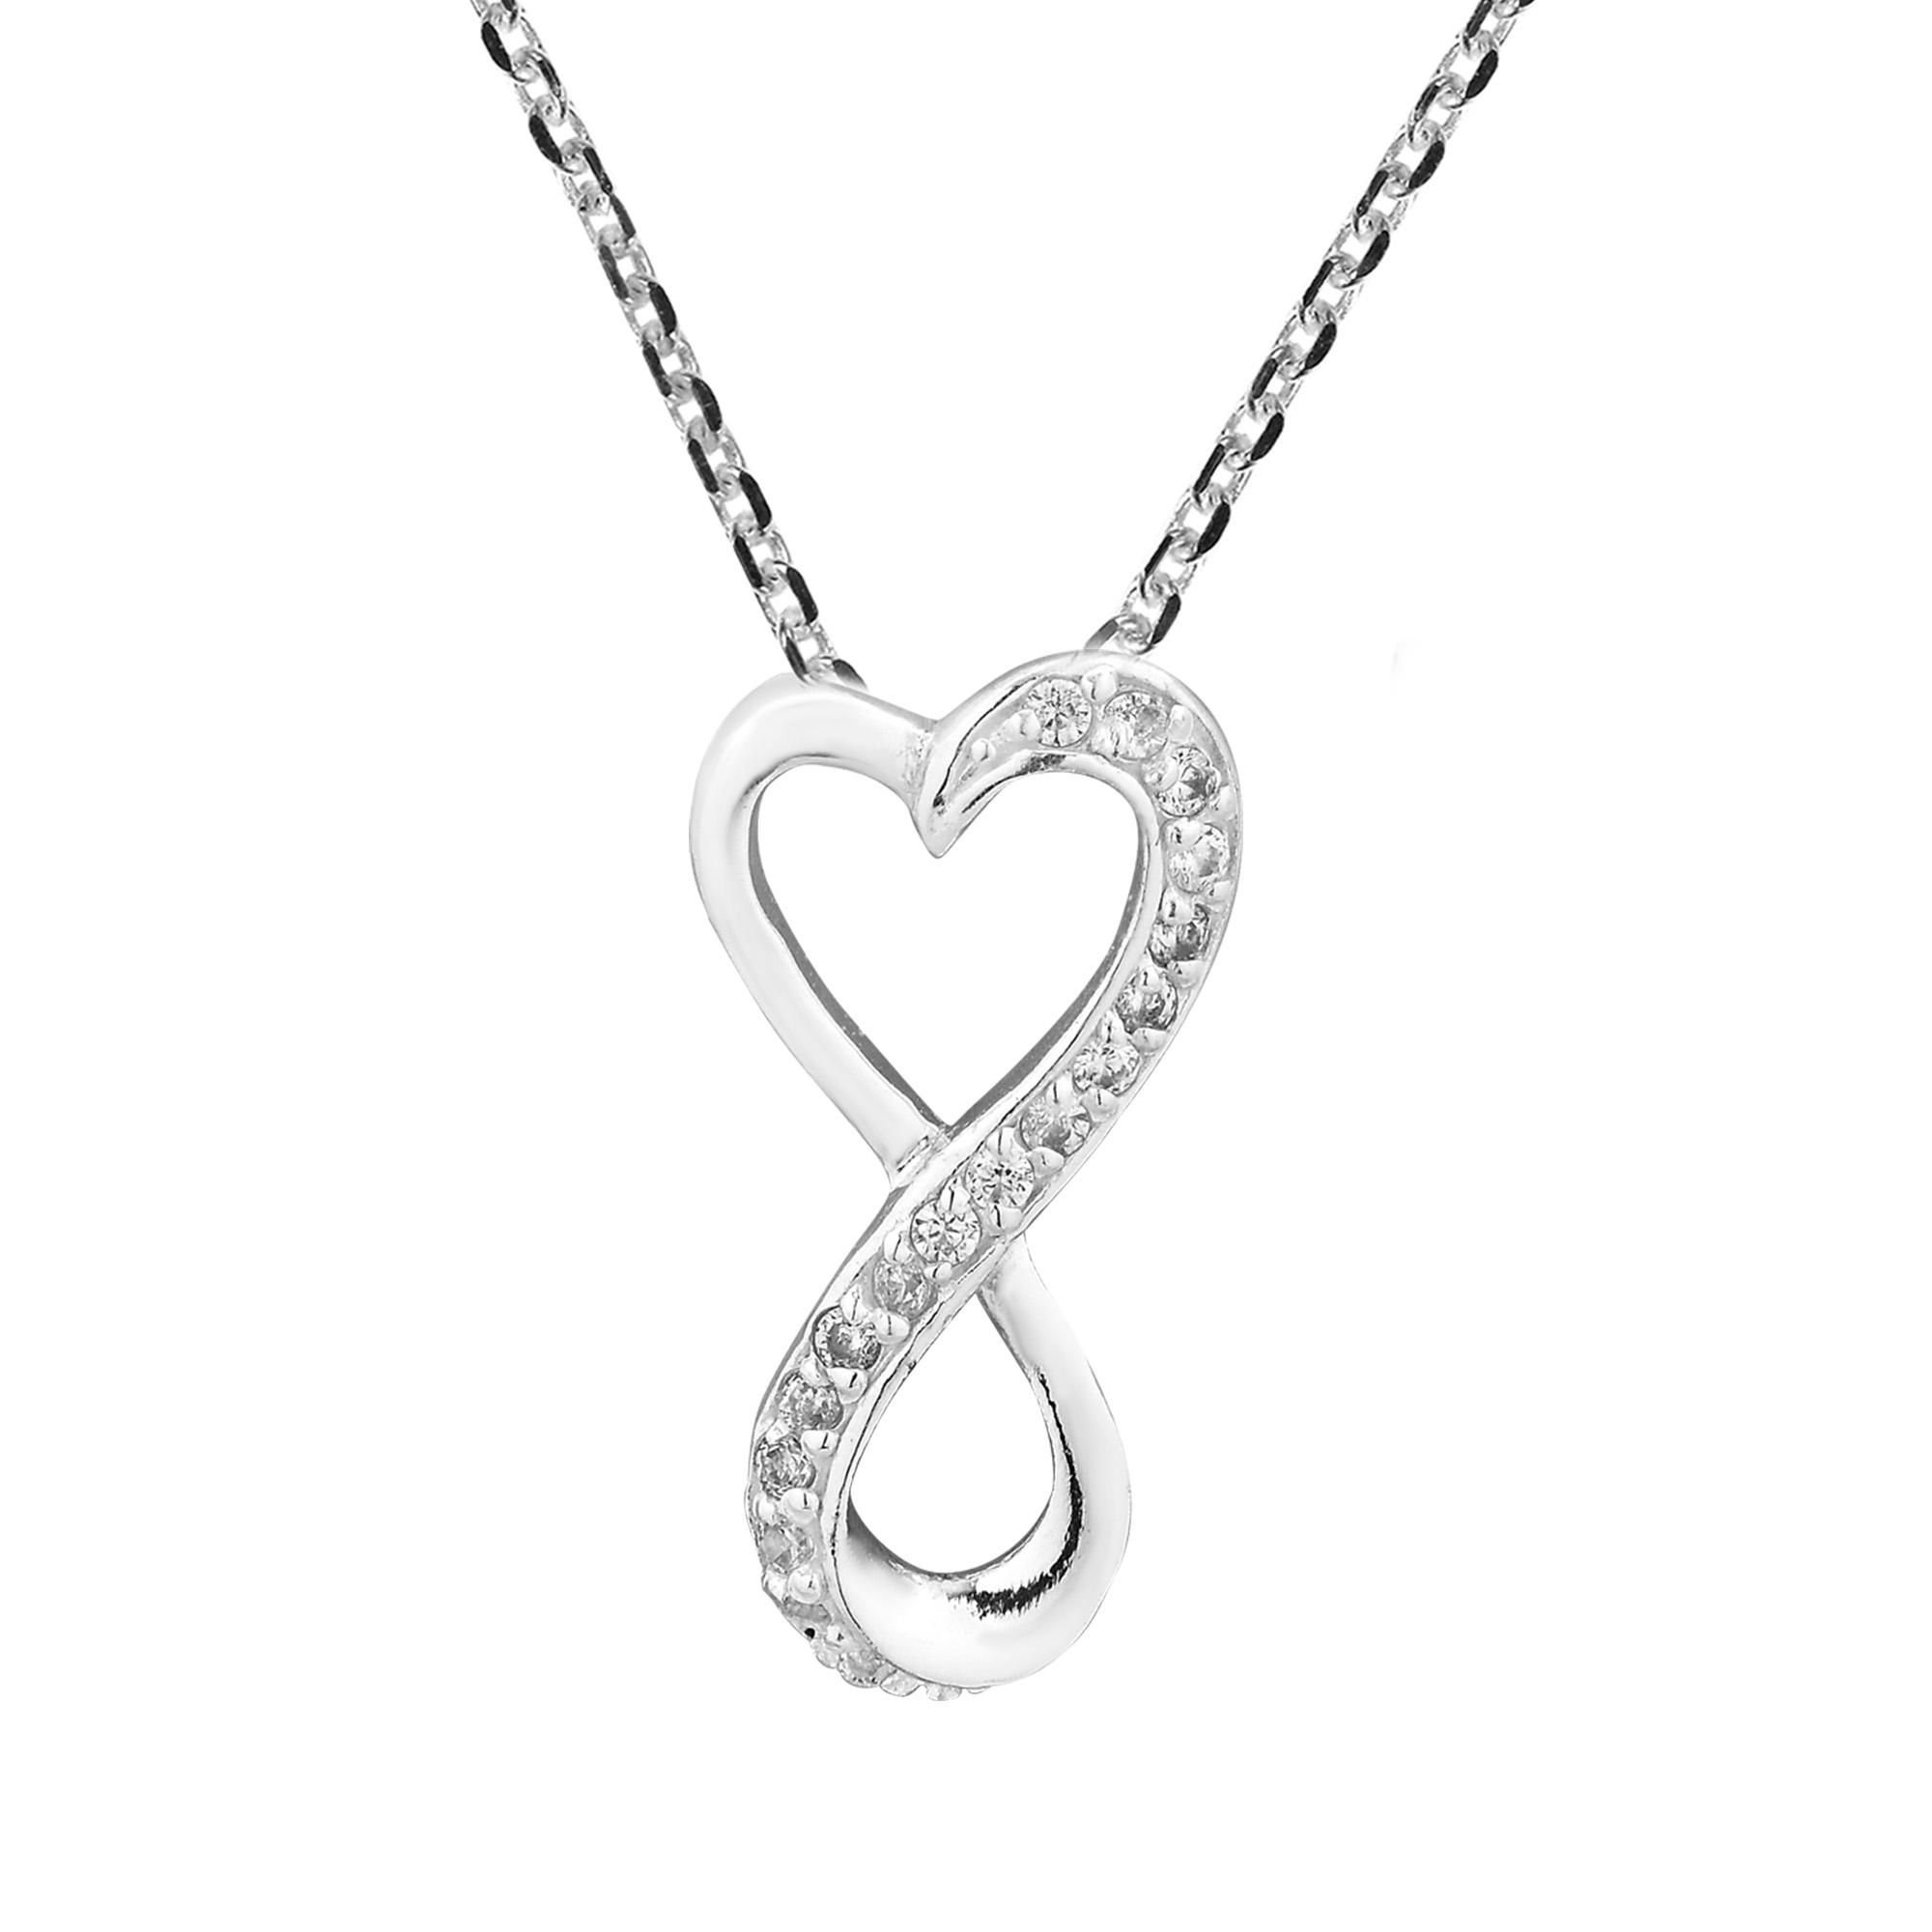 2000x2000 Everlasting Love Infinity Heart Sterling Silver Chain Necklace